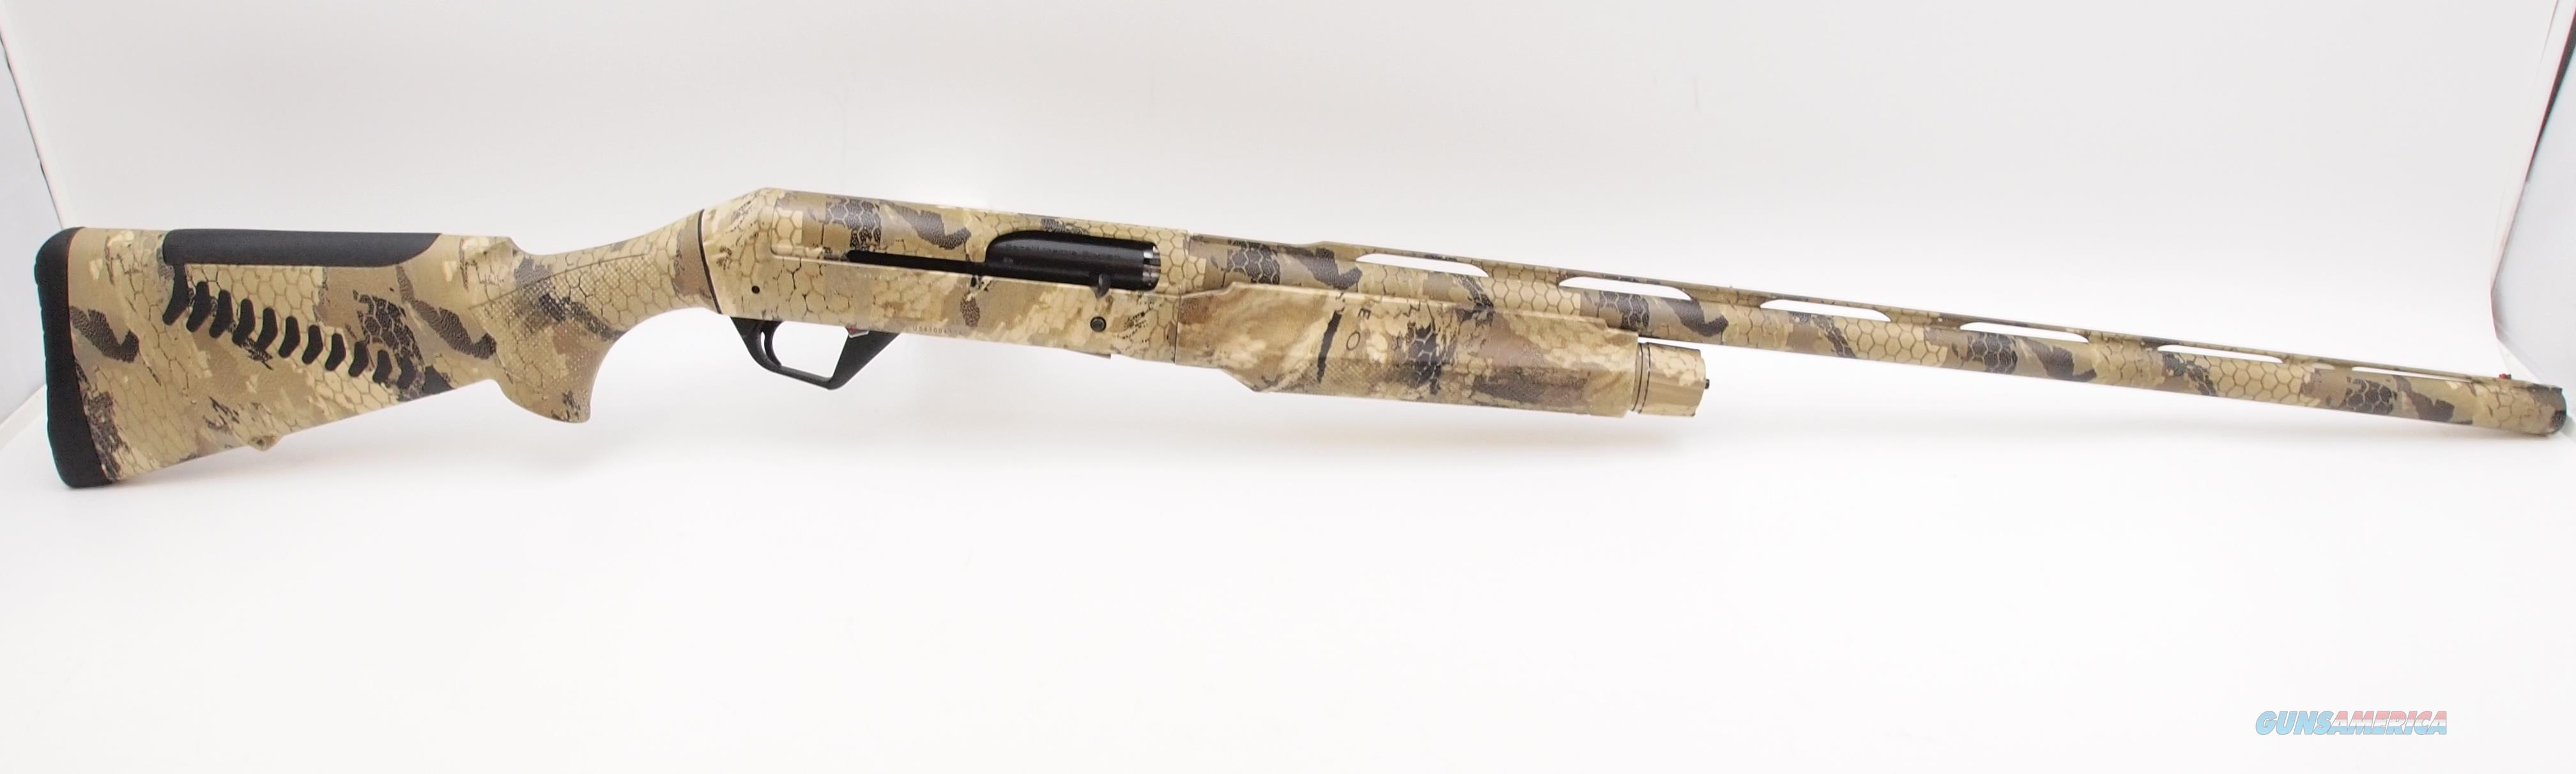 BENELLI SBE II 12GA OPTIFADE MARSH CAMO  Guns > Shotguns > Benelli Shotguns > Sporting